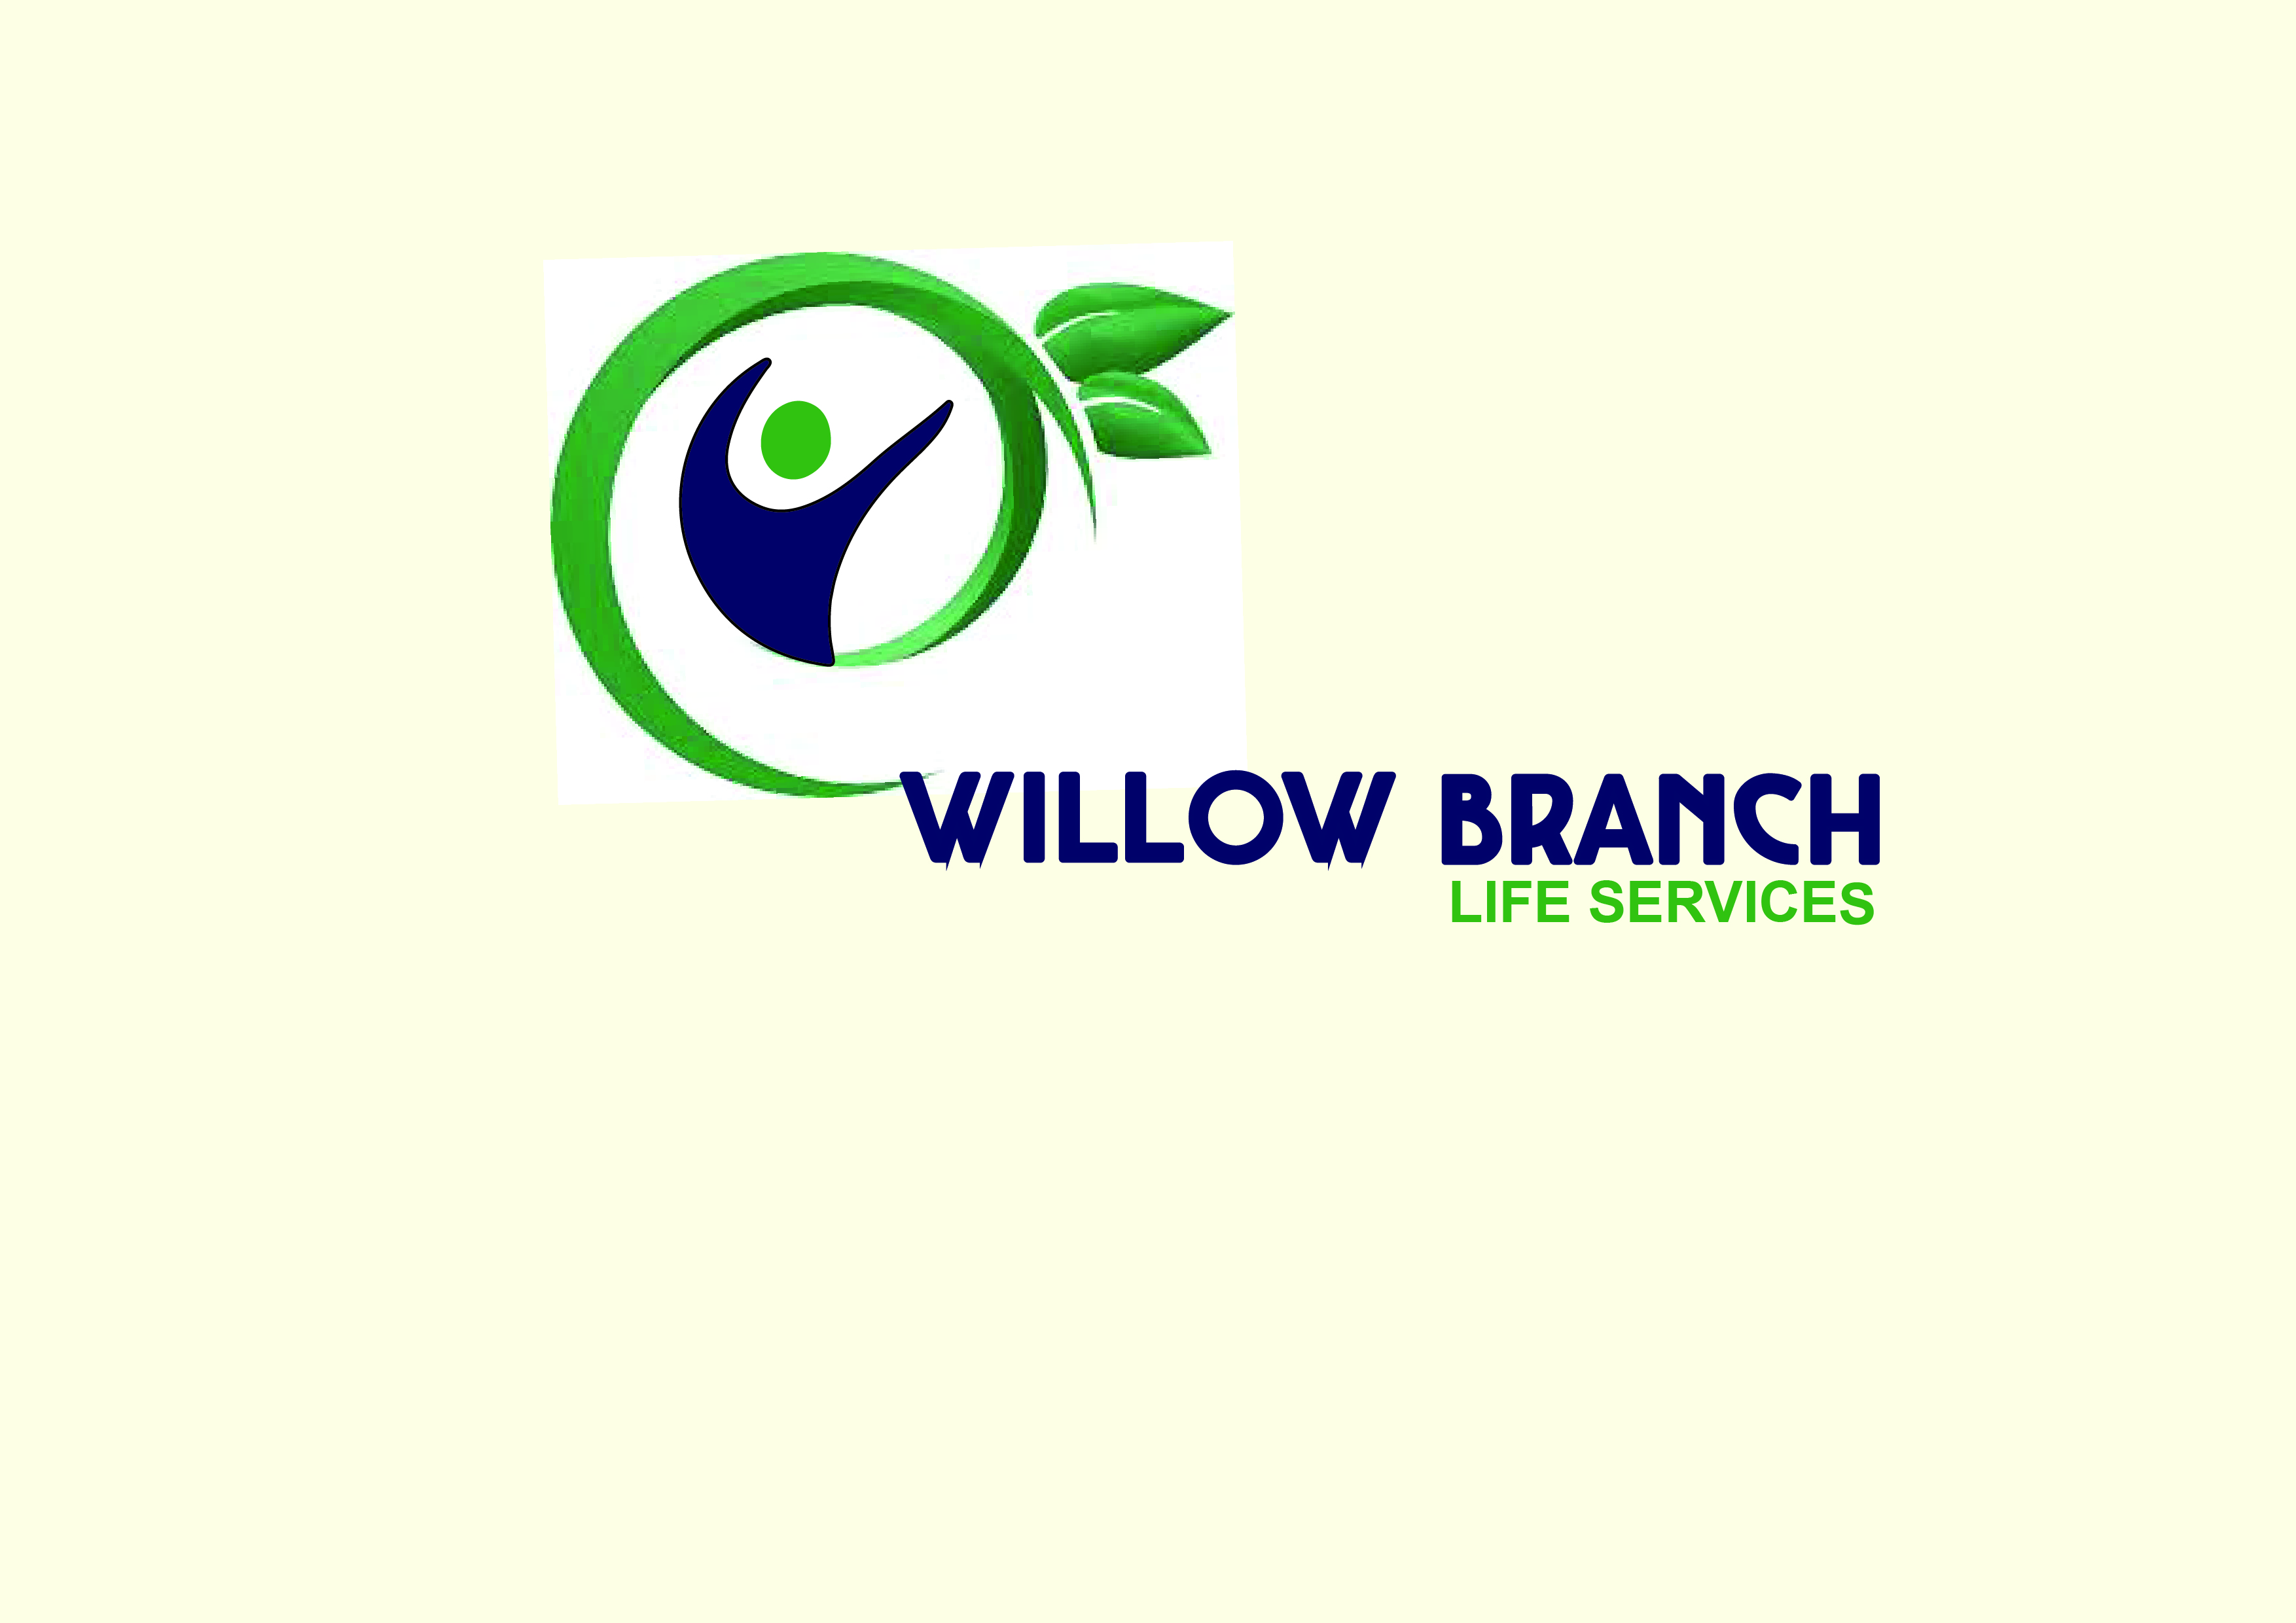 Logo Design by Anum Aamir - Entry No. 98 in the Logo Design Contest Artistic Logo Design for Willow Branch Life Service.